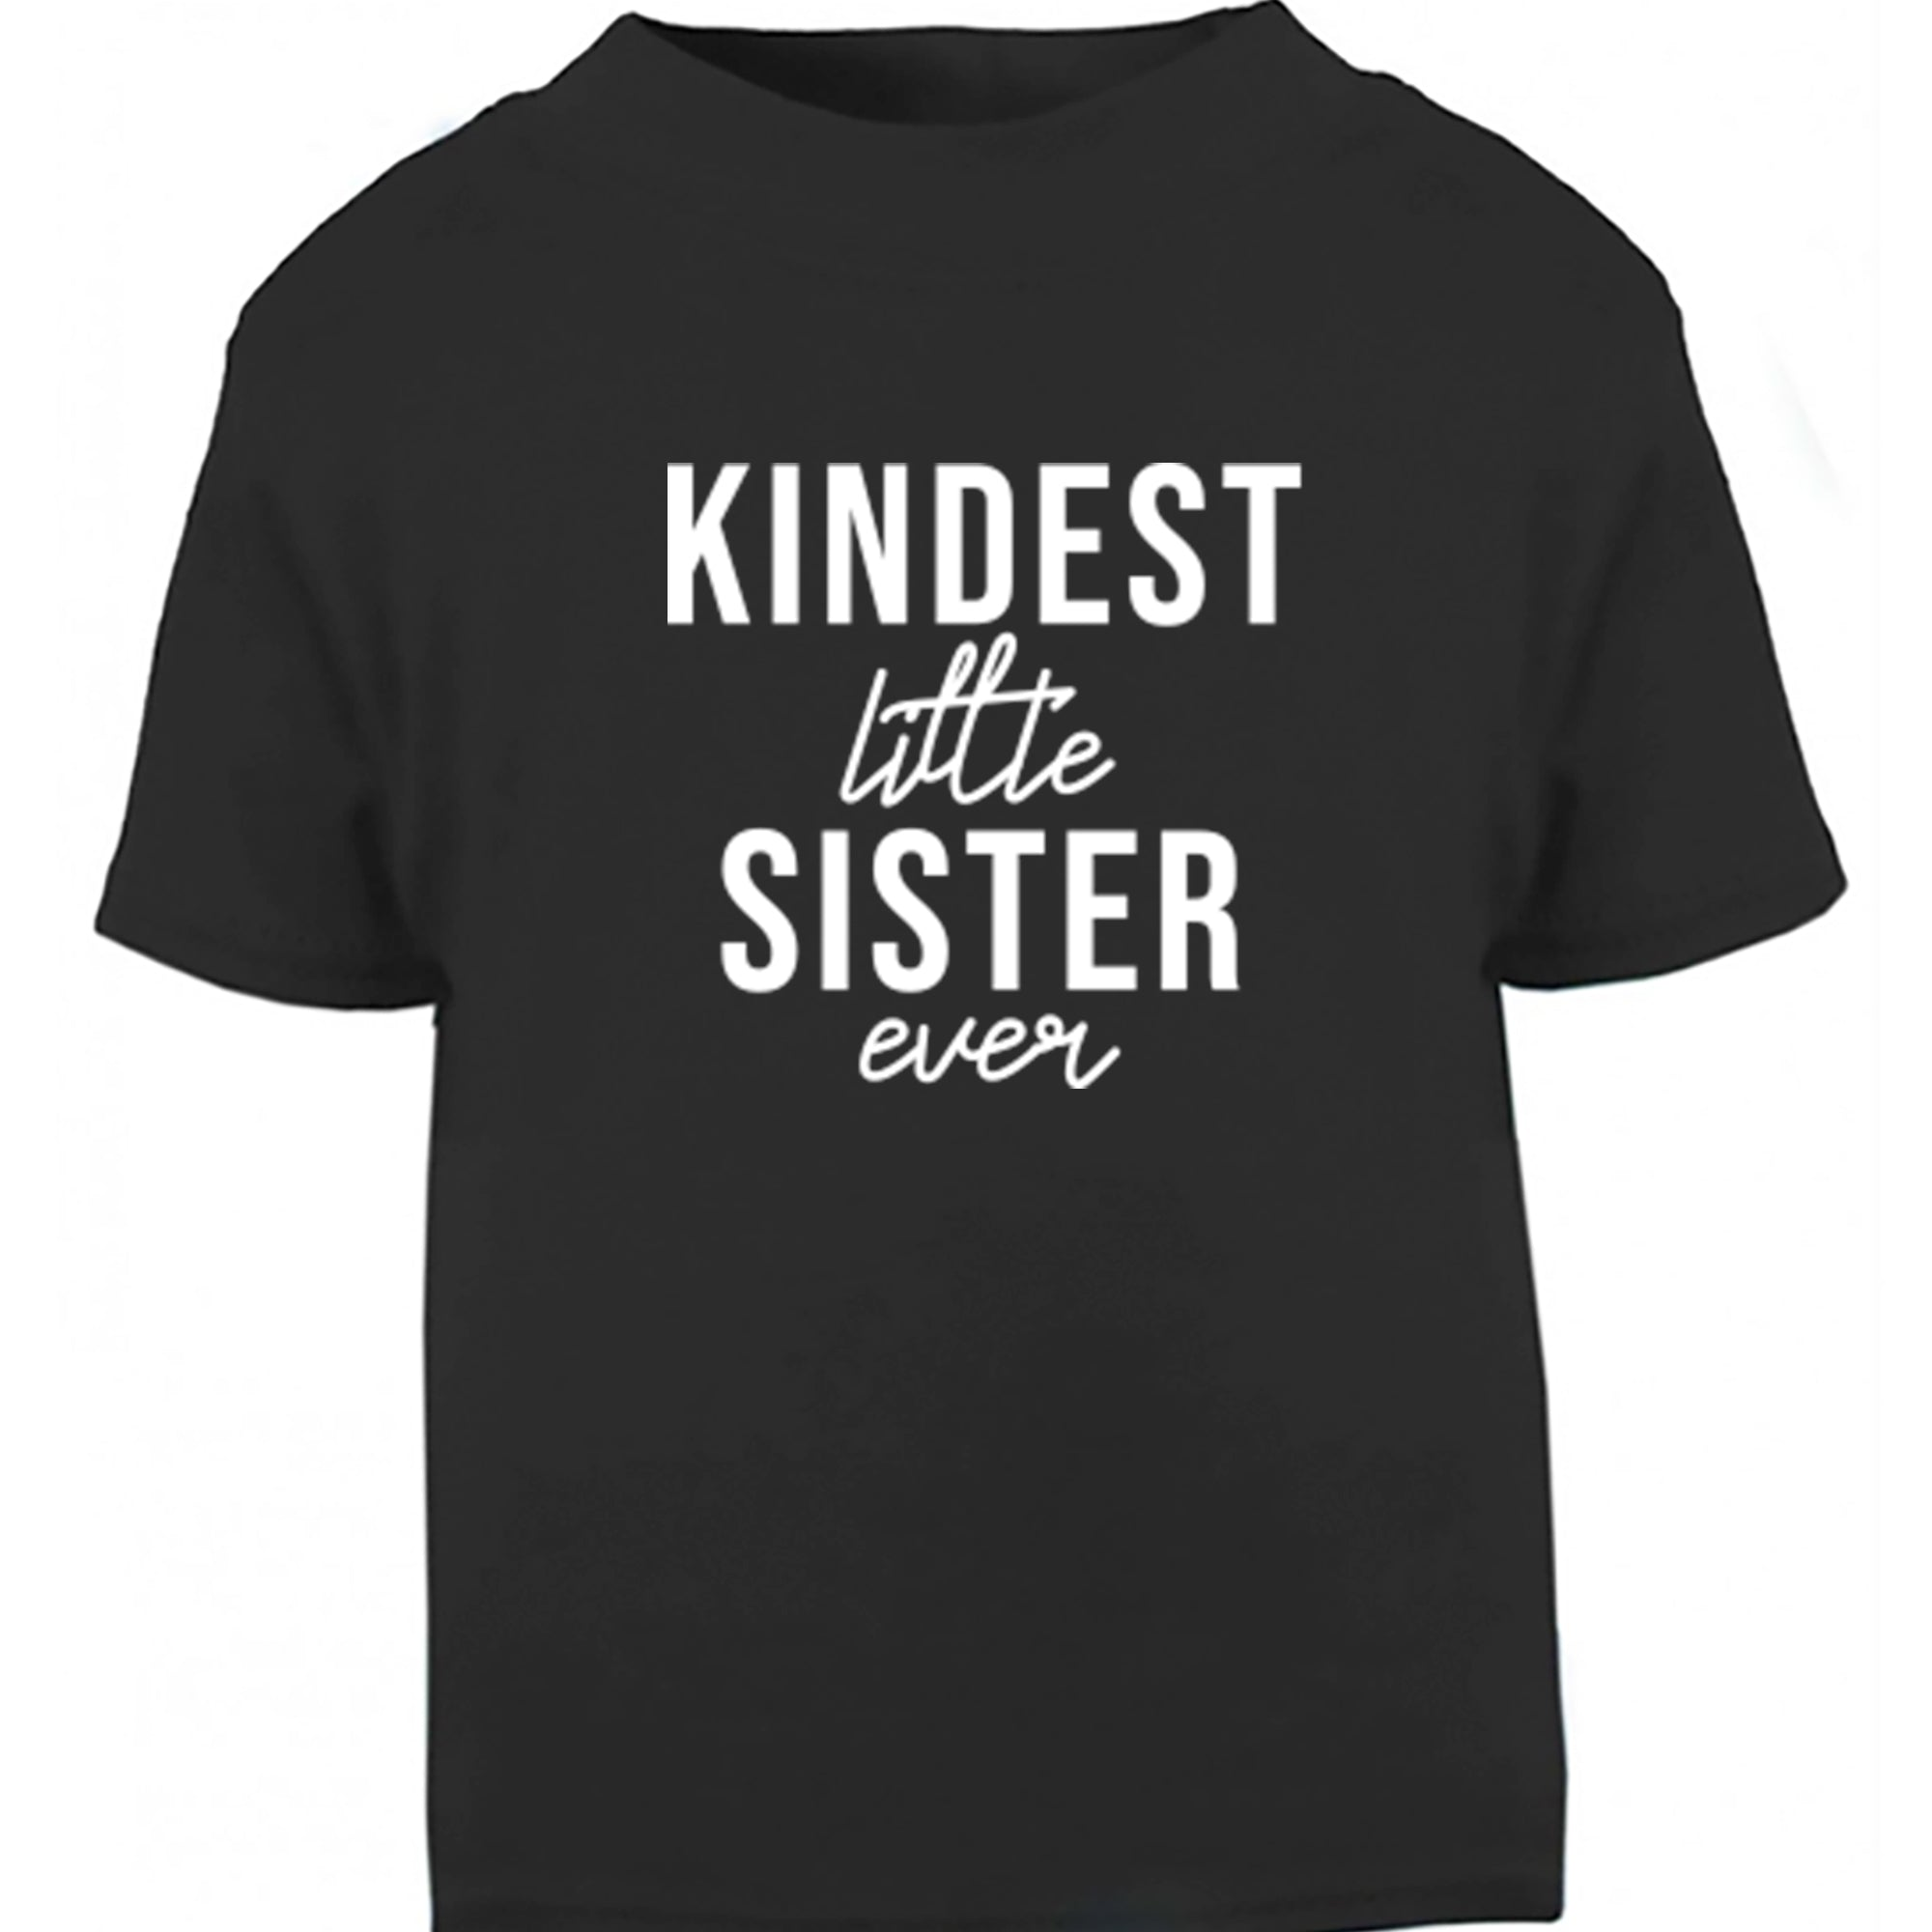 Kindest Little Sister Ever Childrens Ages 3/4-12/14 Unisex Fit T-Shirt S0507 - Illustrated Identity Ltd.